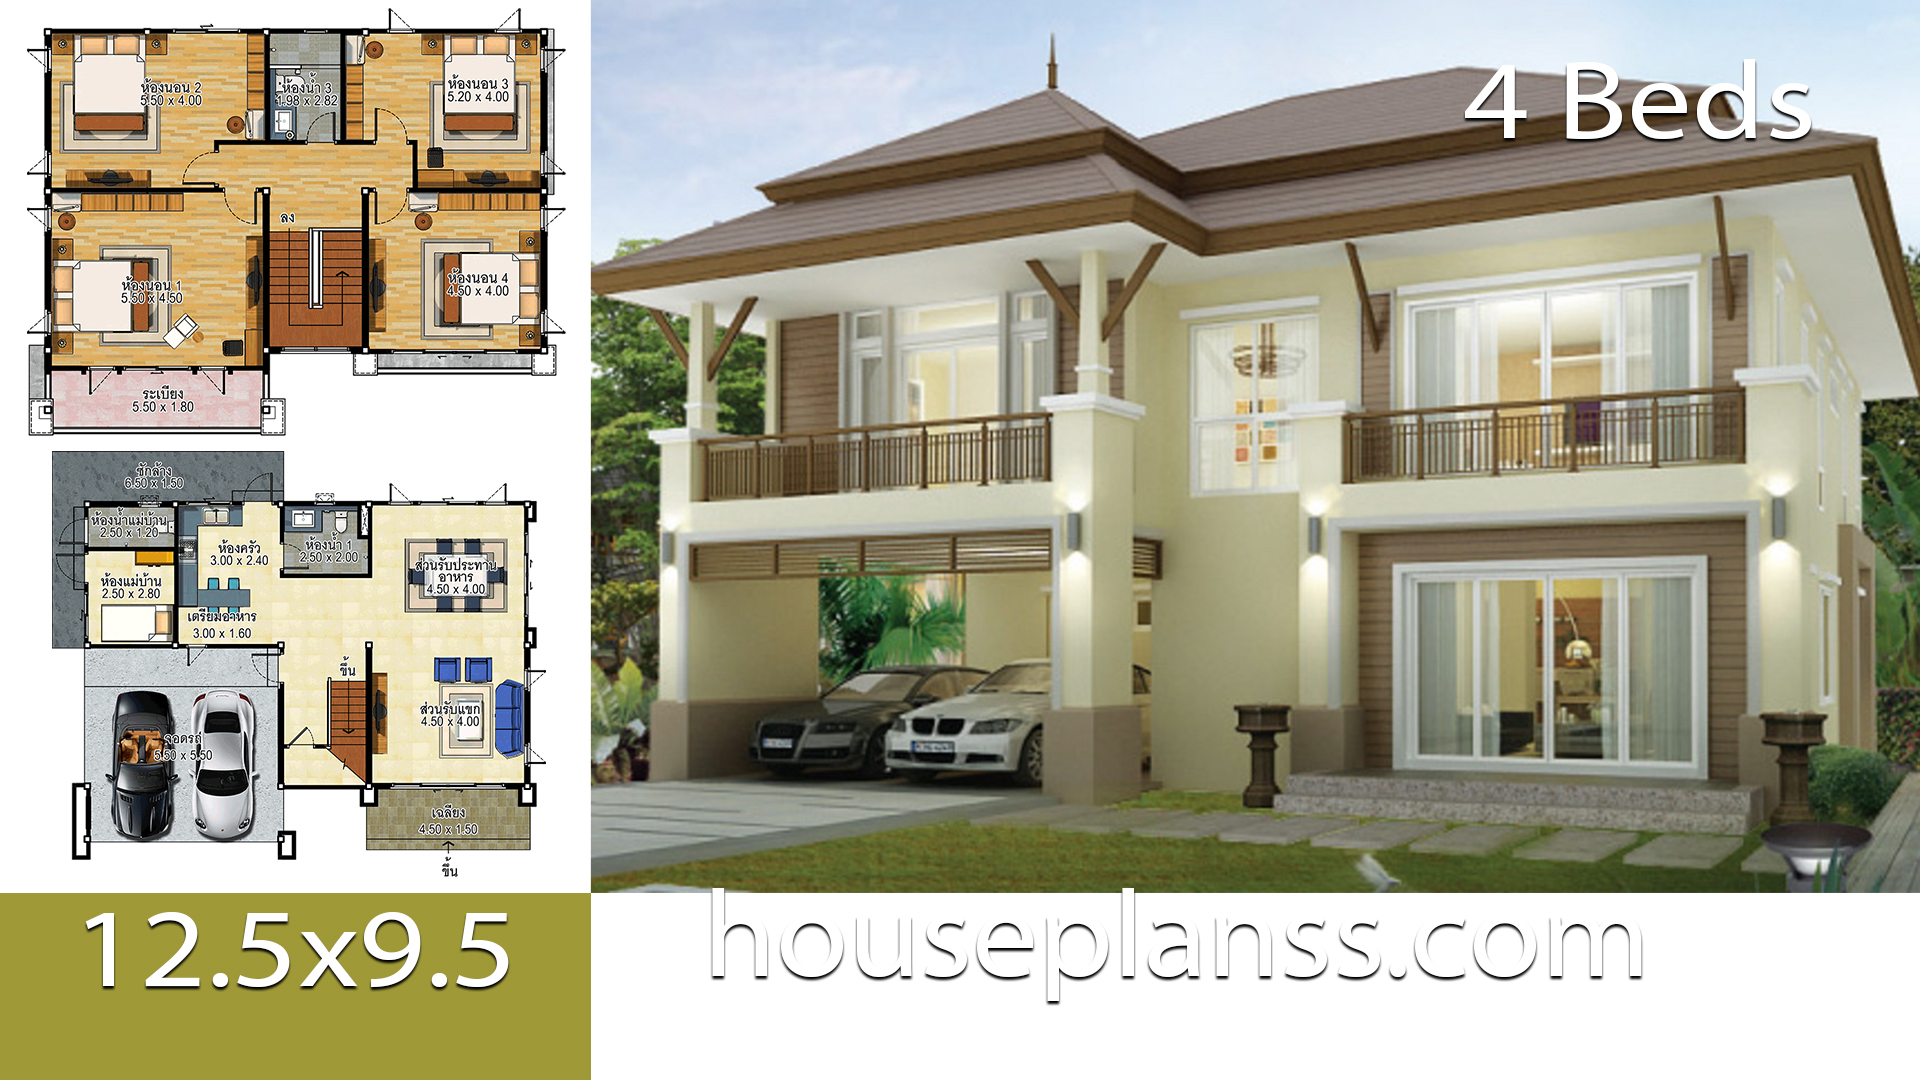 House design idea 12.5×9.5 with 4 bedrooms